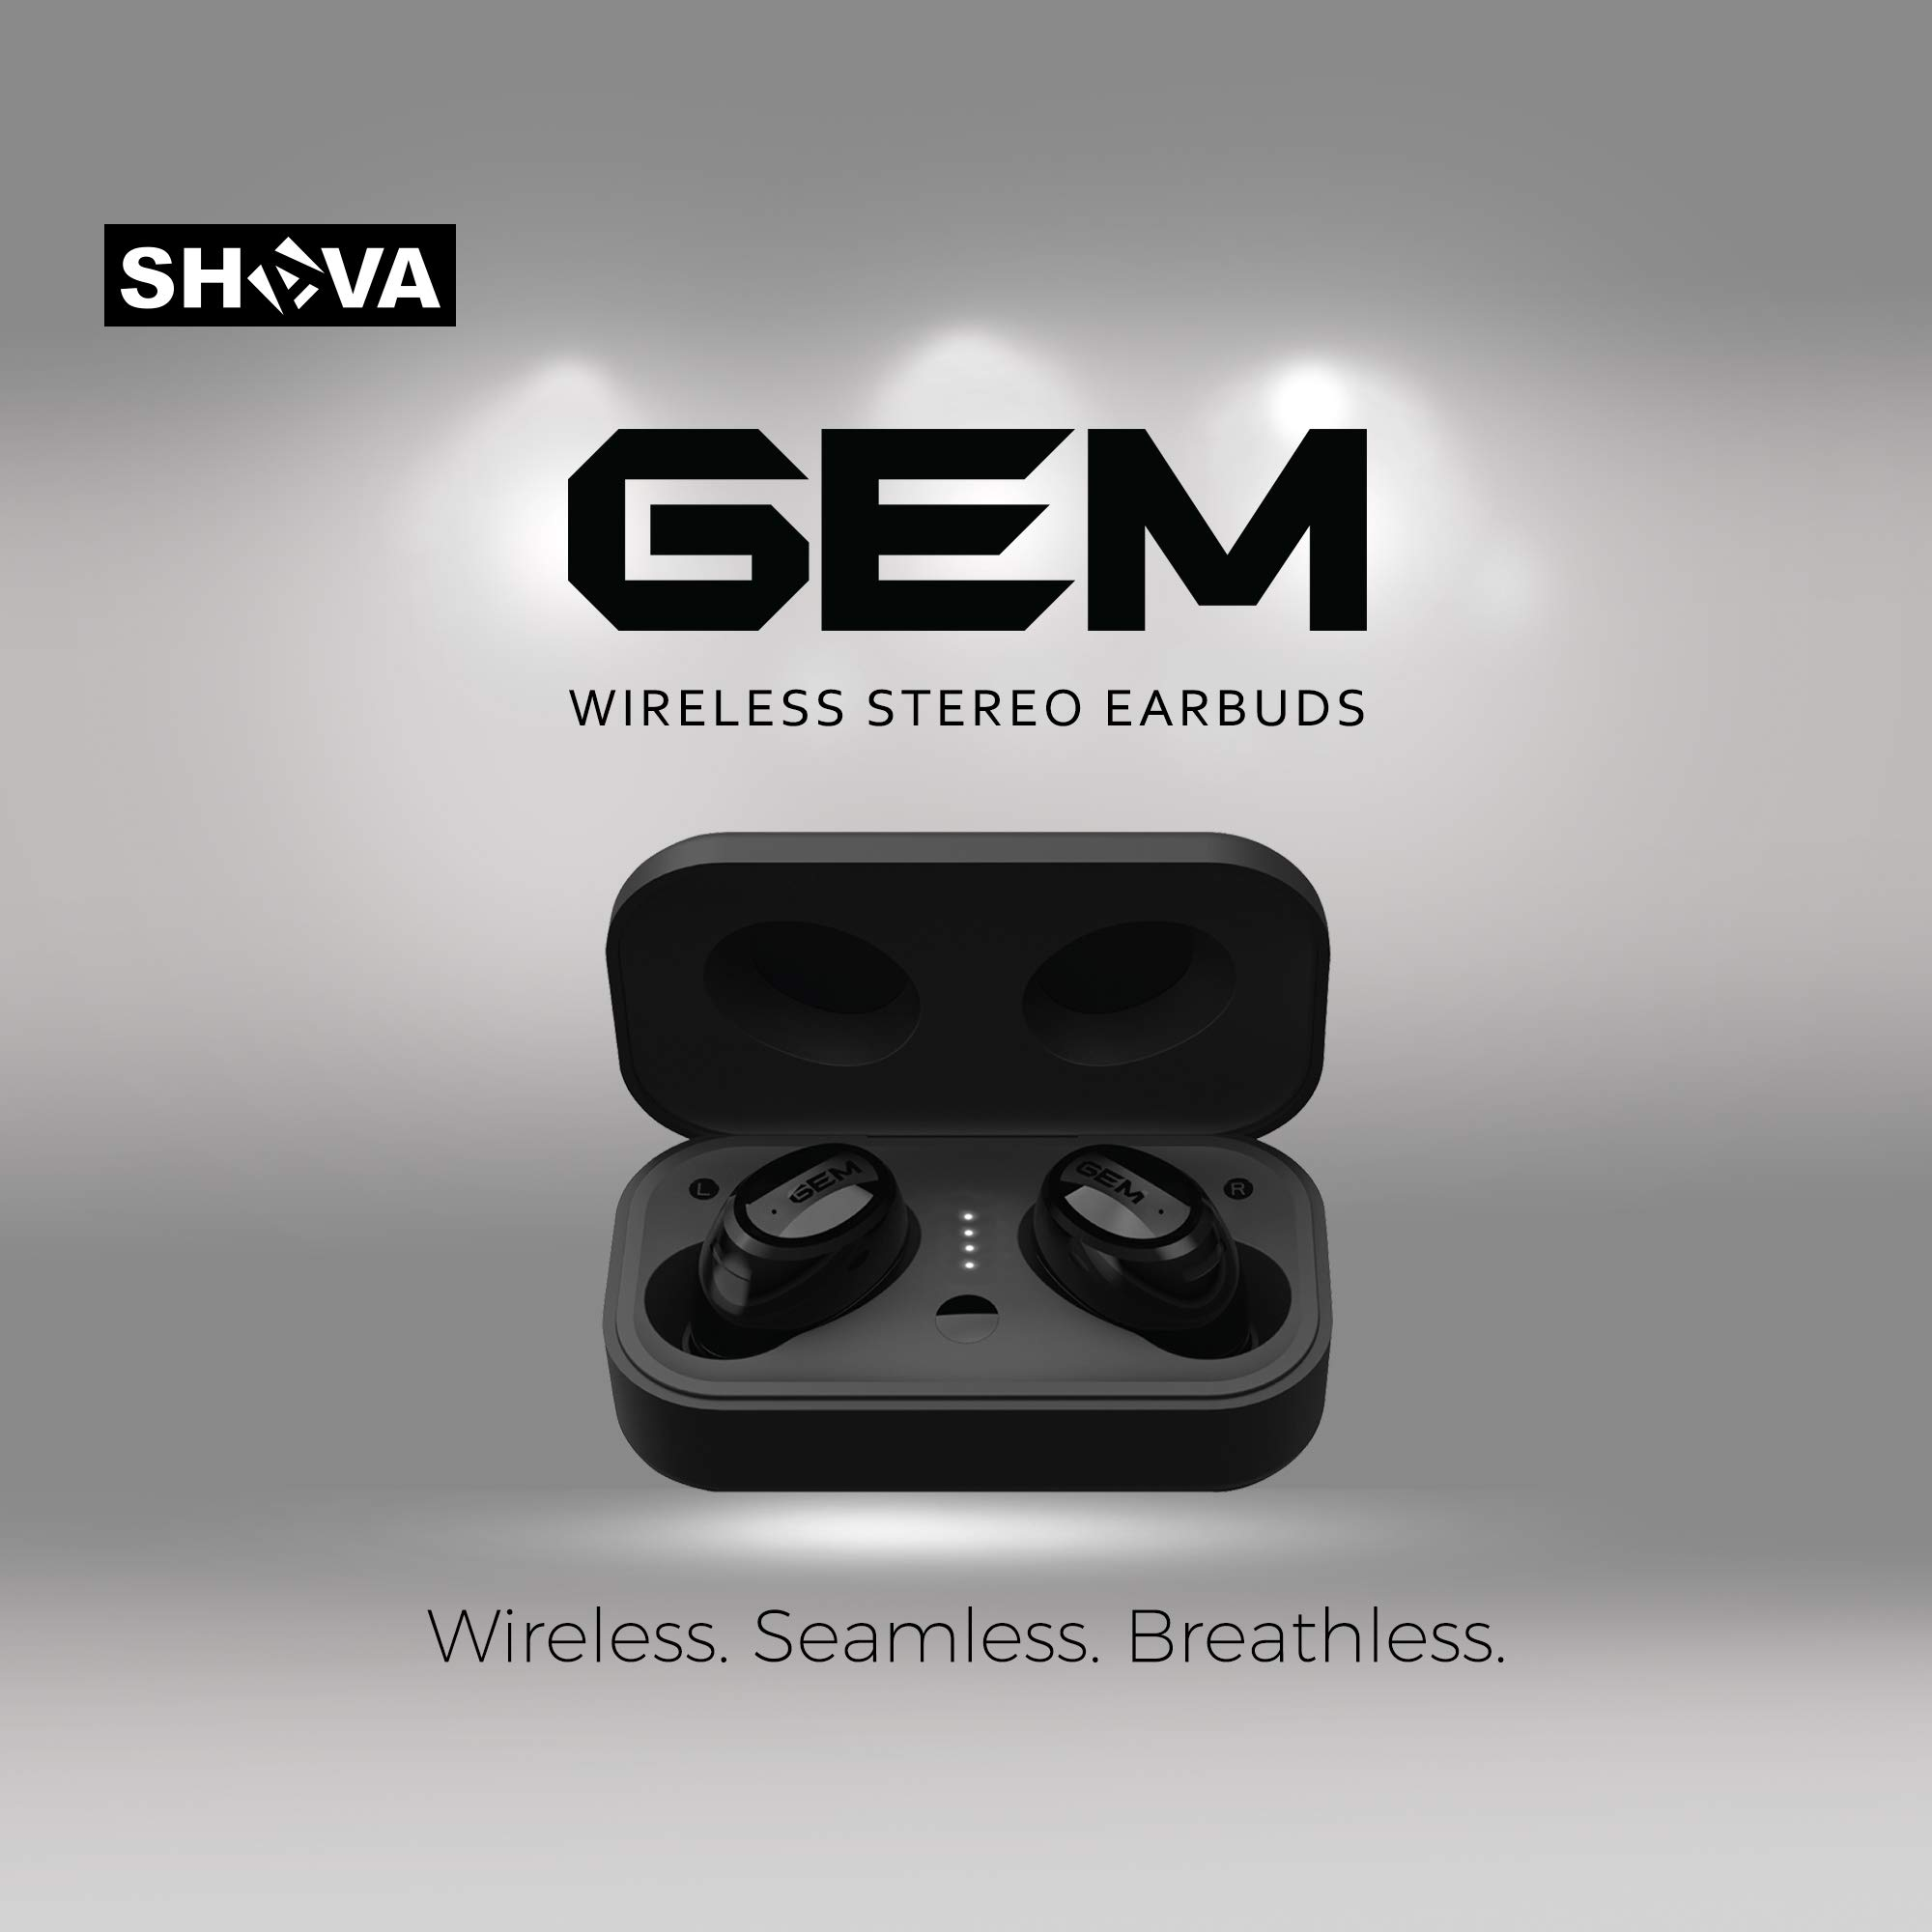 SHAVA GEM Wireless Earbuds, Bluetooth Headphones with Noise Cancelling and Microphone, True Wireless Earbuds with Wireless Charging and 3D Stereo Sound (Wireless Charger Included, Black Color) Price: $59.90